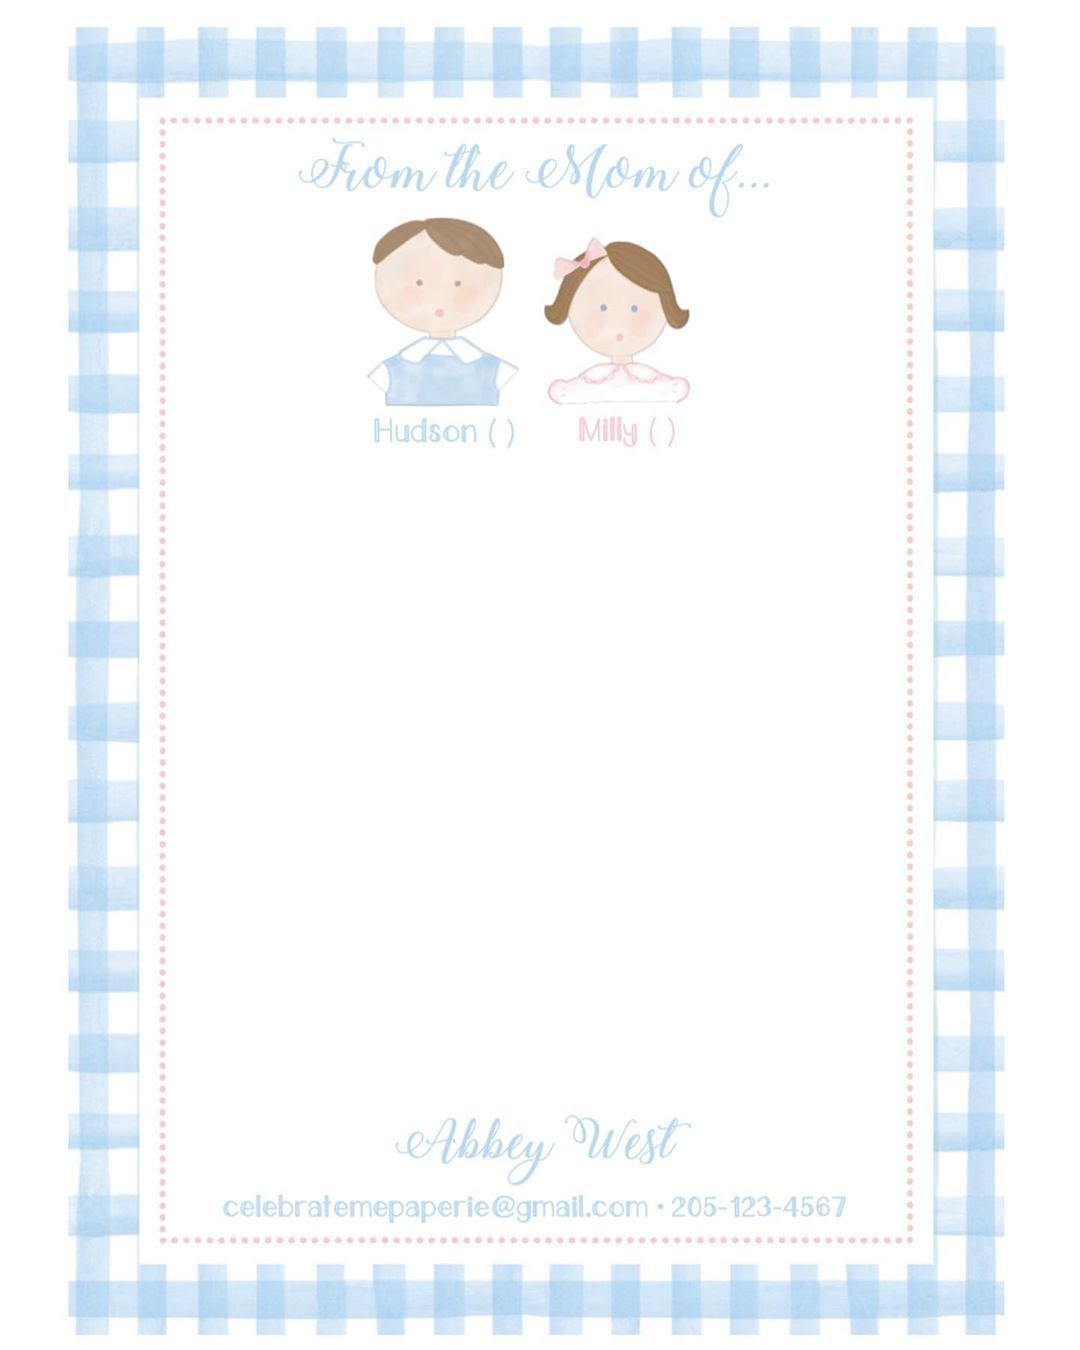 Celebrate Me Paperie On Instagram Y All I Am So Excited To Share With You These Personalized Heirloom Notepads F Little Boy And Girl Little Boys Boy Or Girl [ 1350 x 1080 Pixel ]